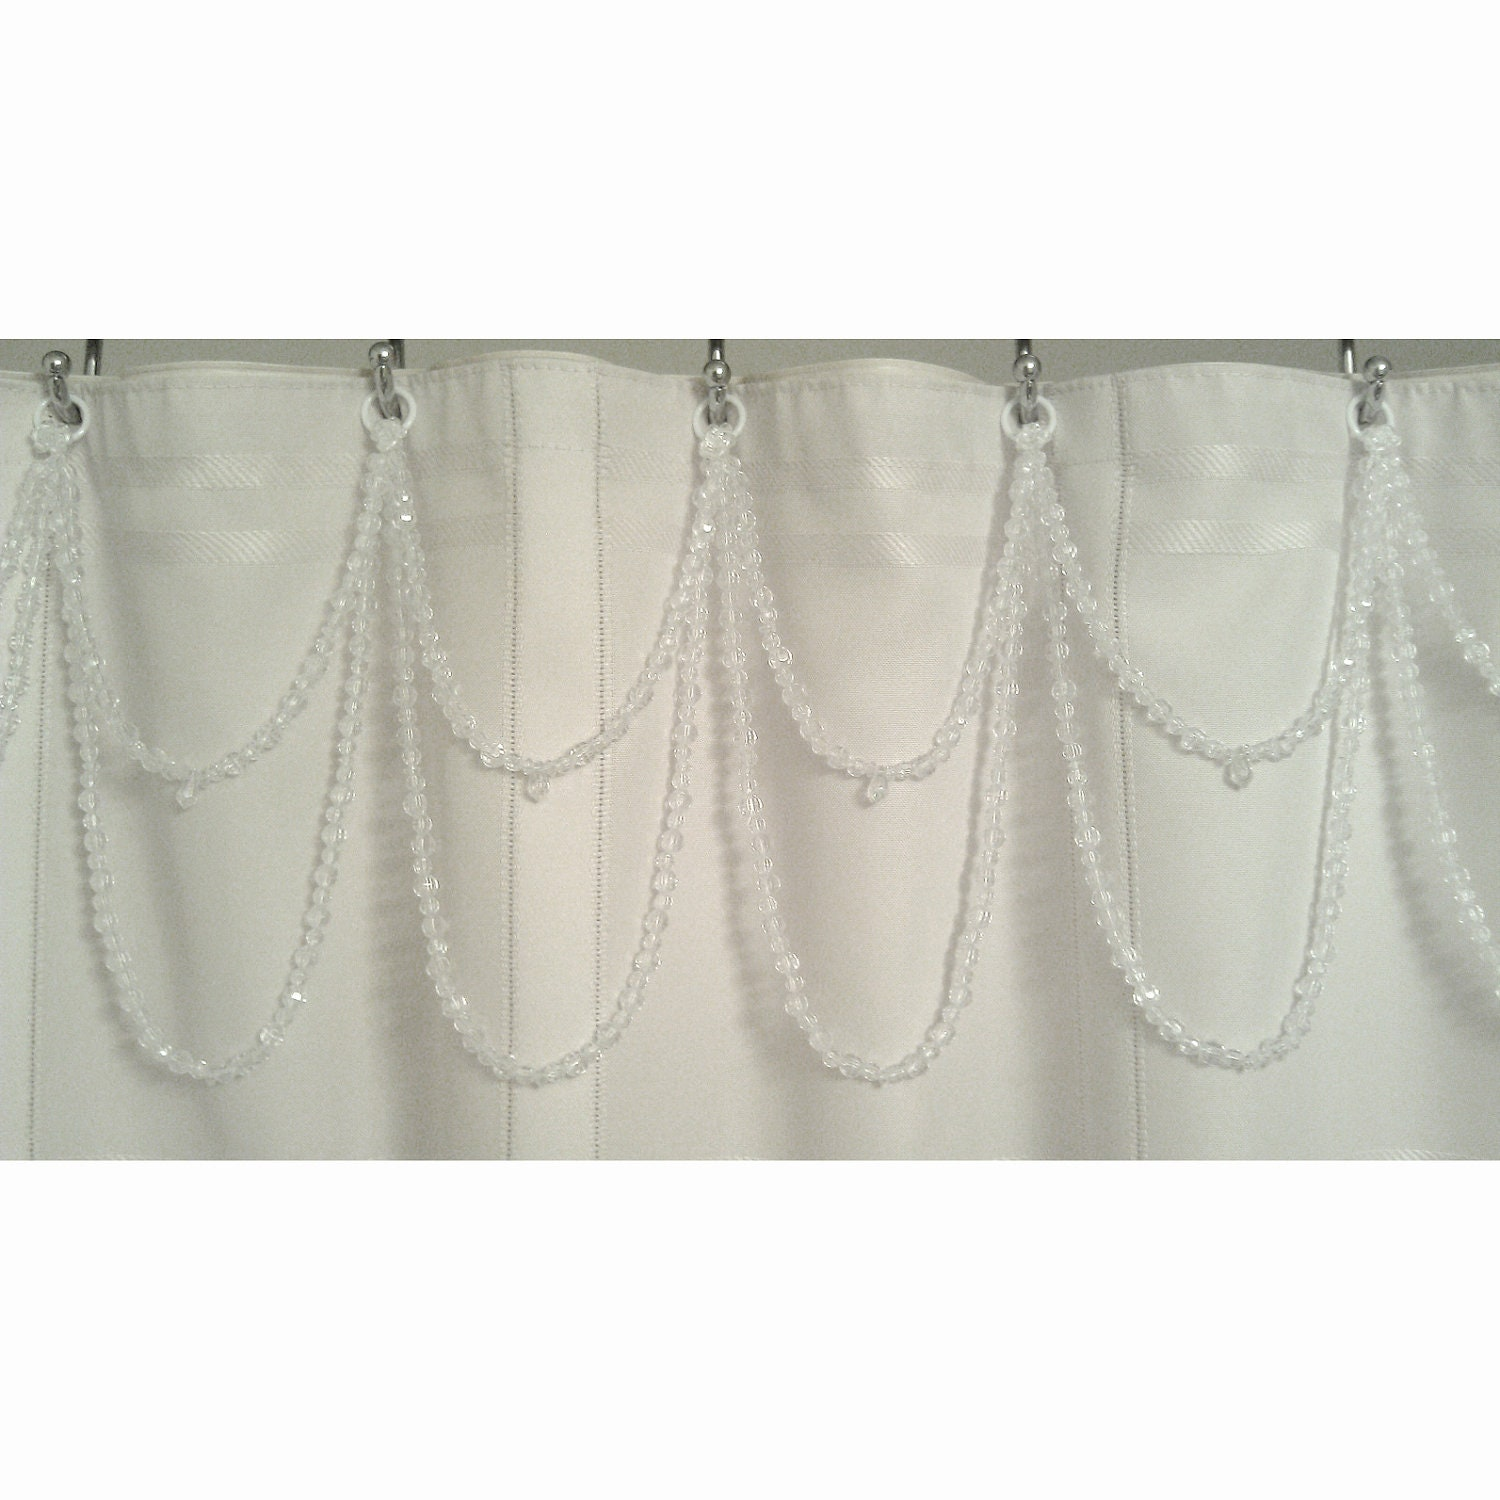 shower curtain bling crystal clear resin by showercurtainbling